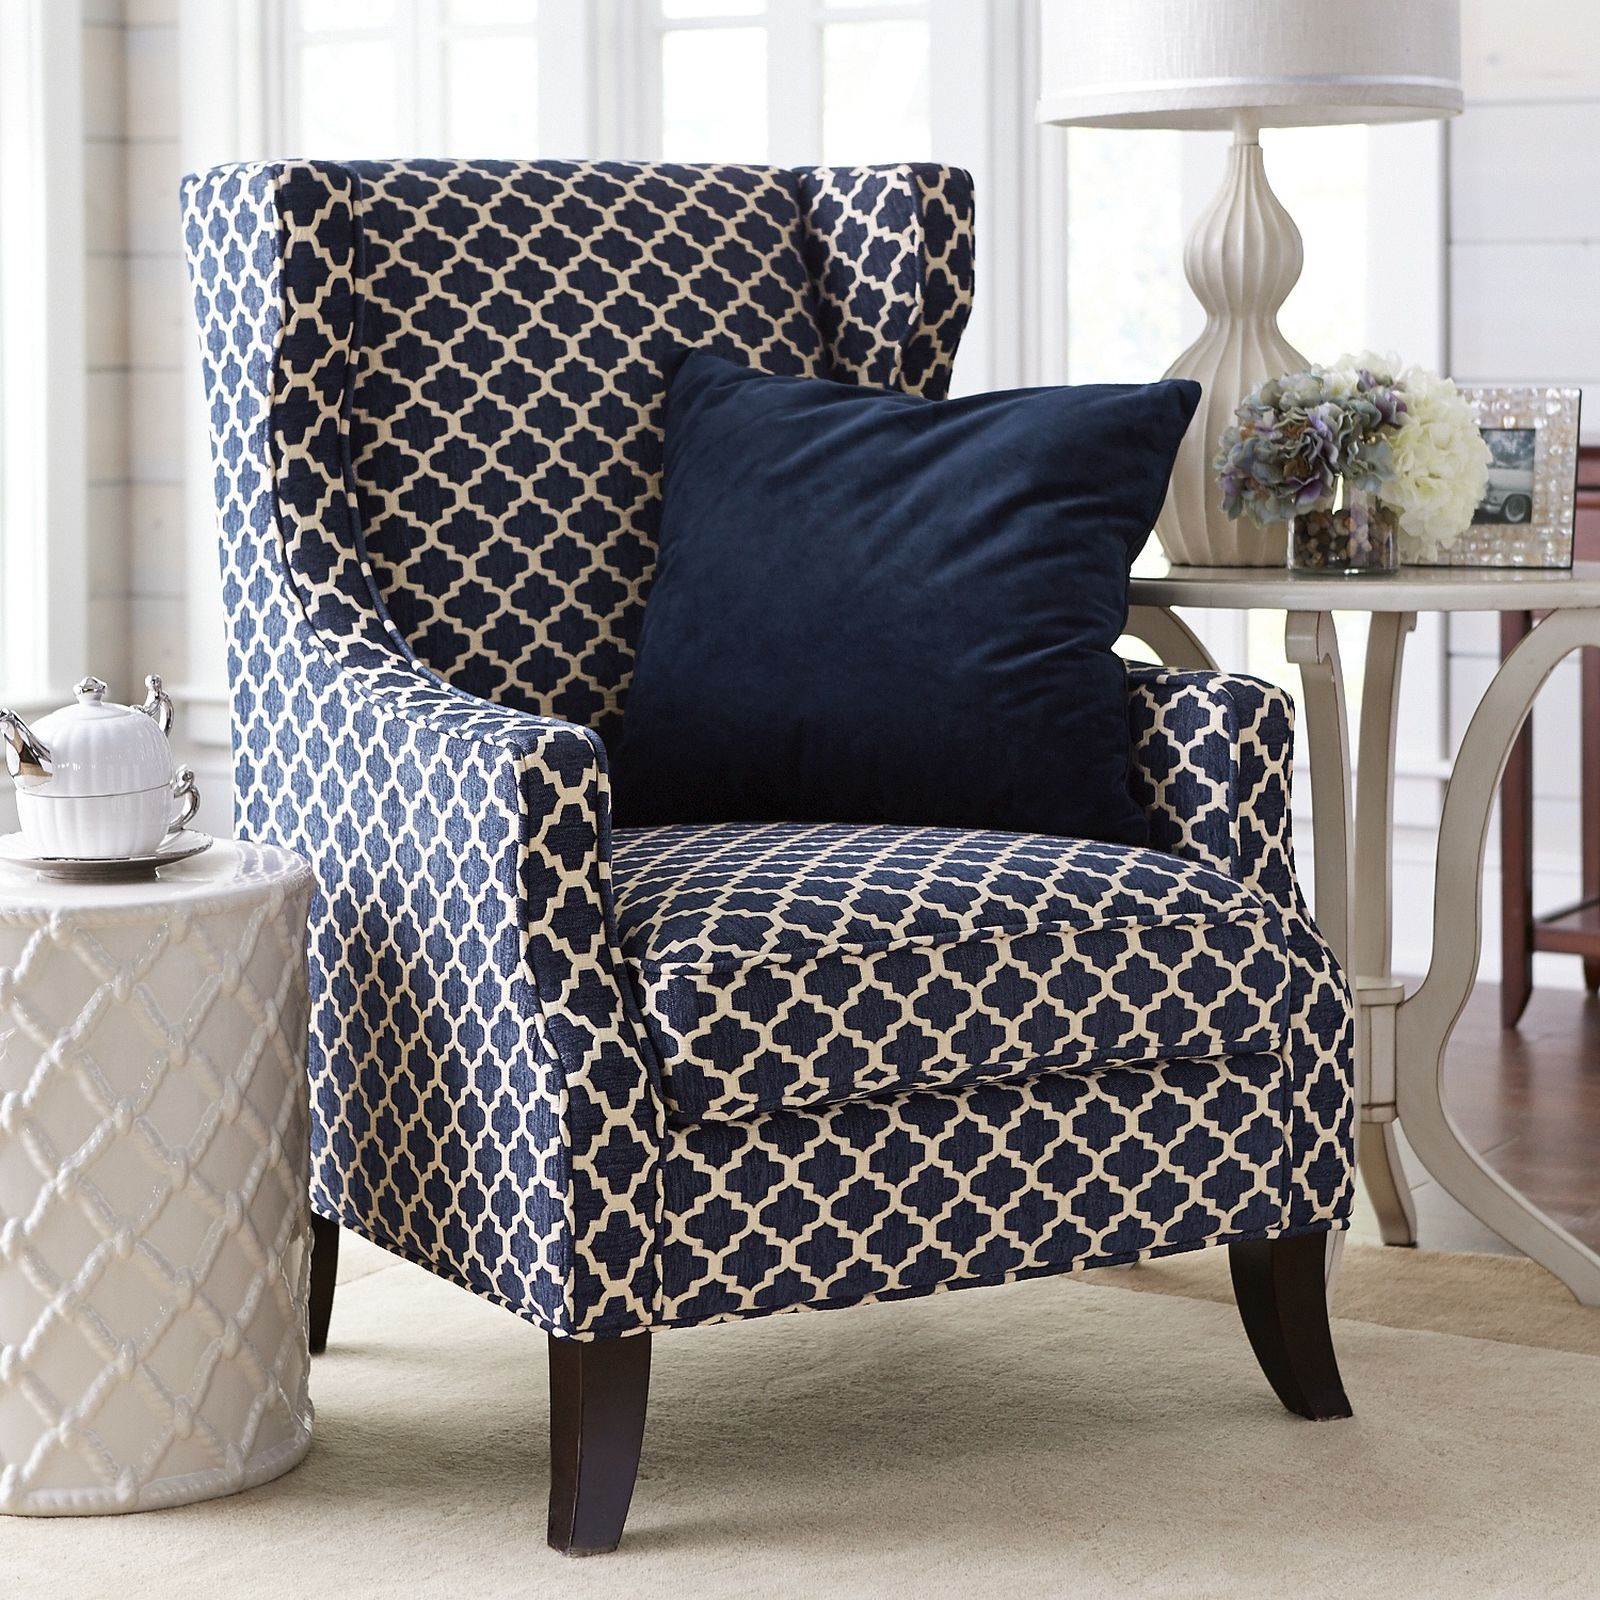 Blue And White Upholstered Chairs Wicker Papasan Chair Navy Trellis Wing Central Heating Wingback